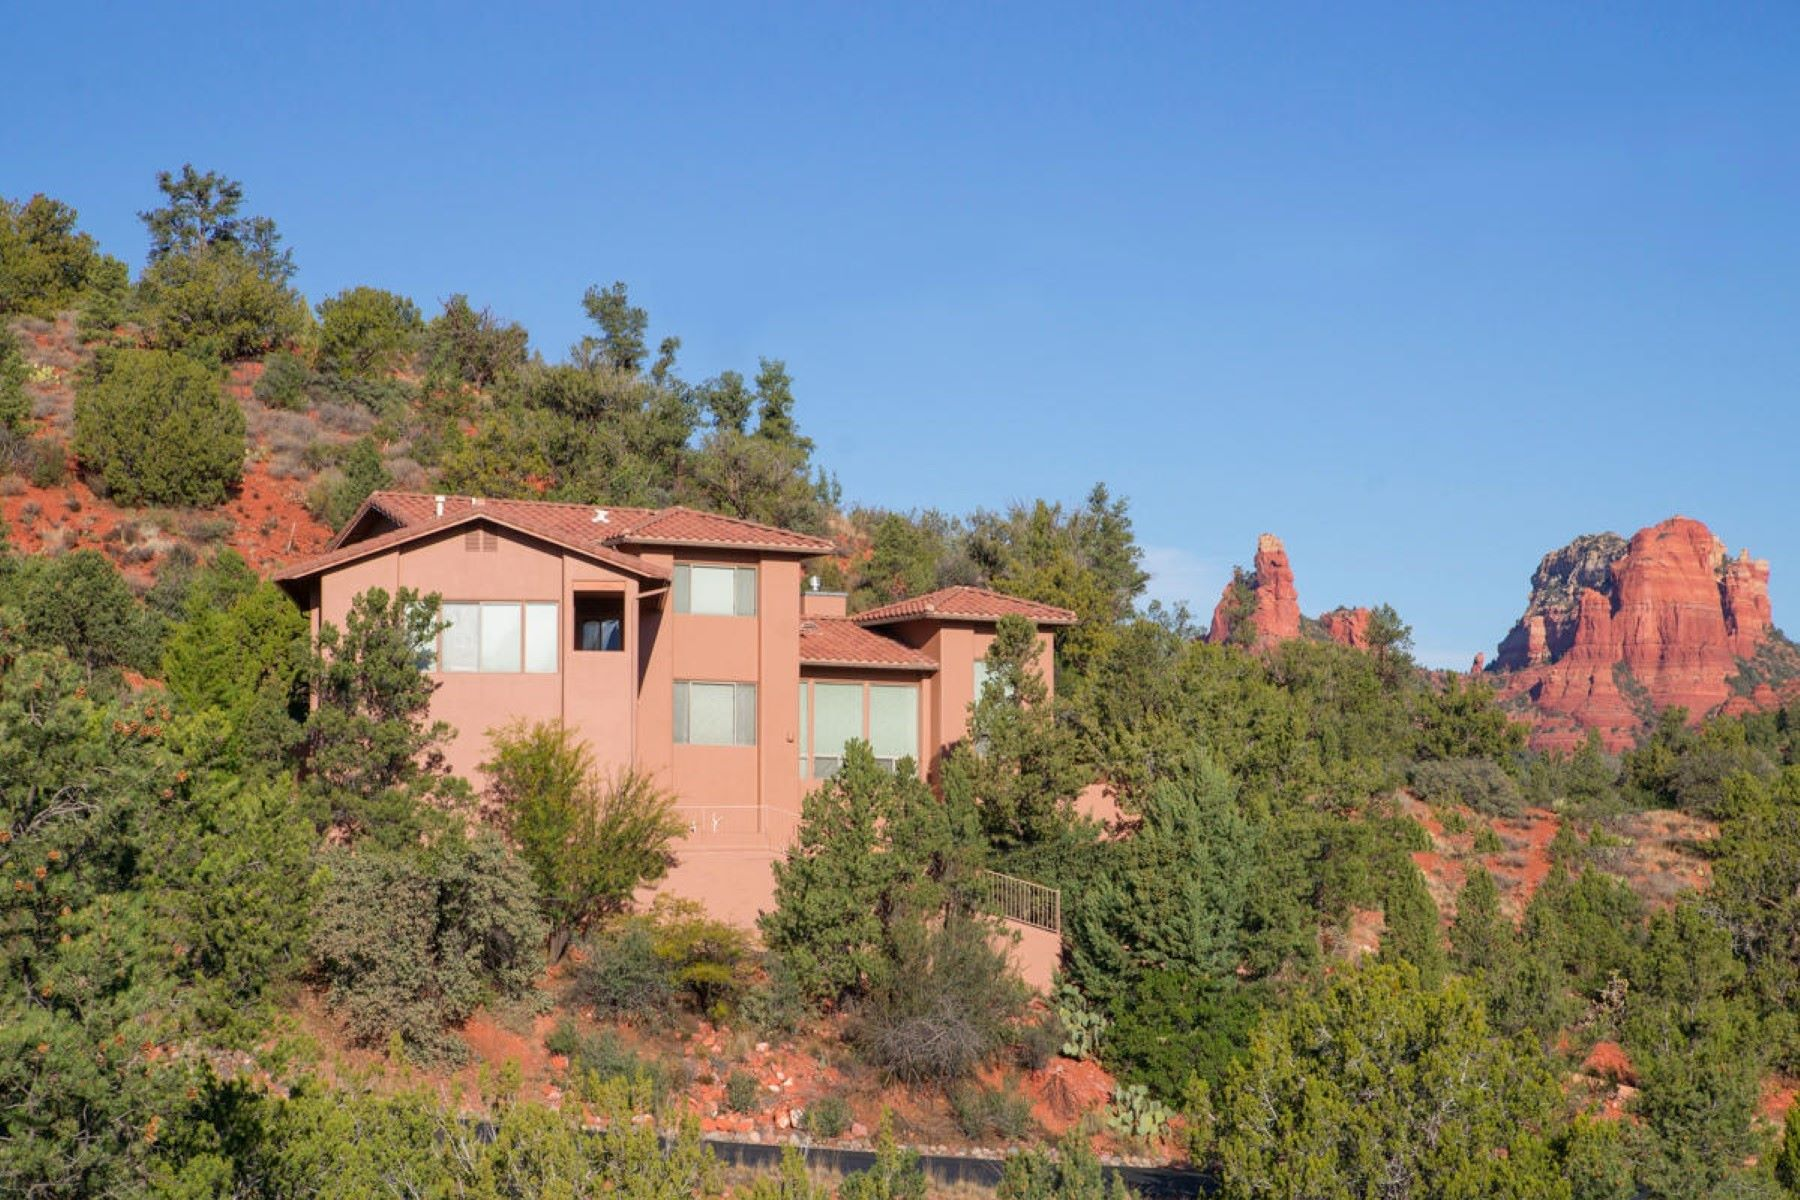 Single Family Home for Sale at Elegant Home With Spectacular Views 180 Barcelona Rd Sedona, Arizona, 86336 United States